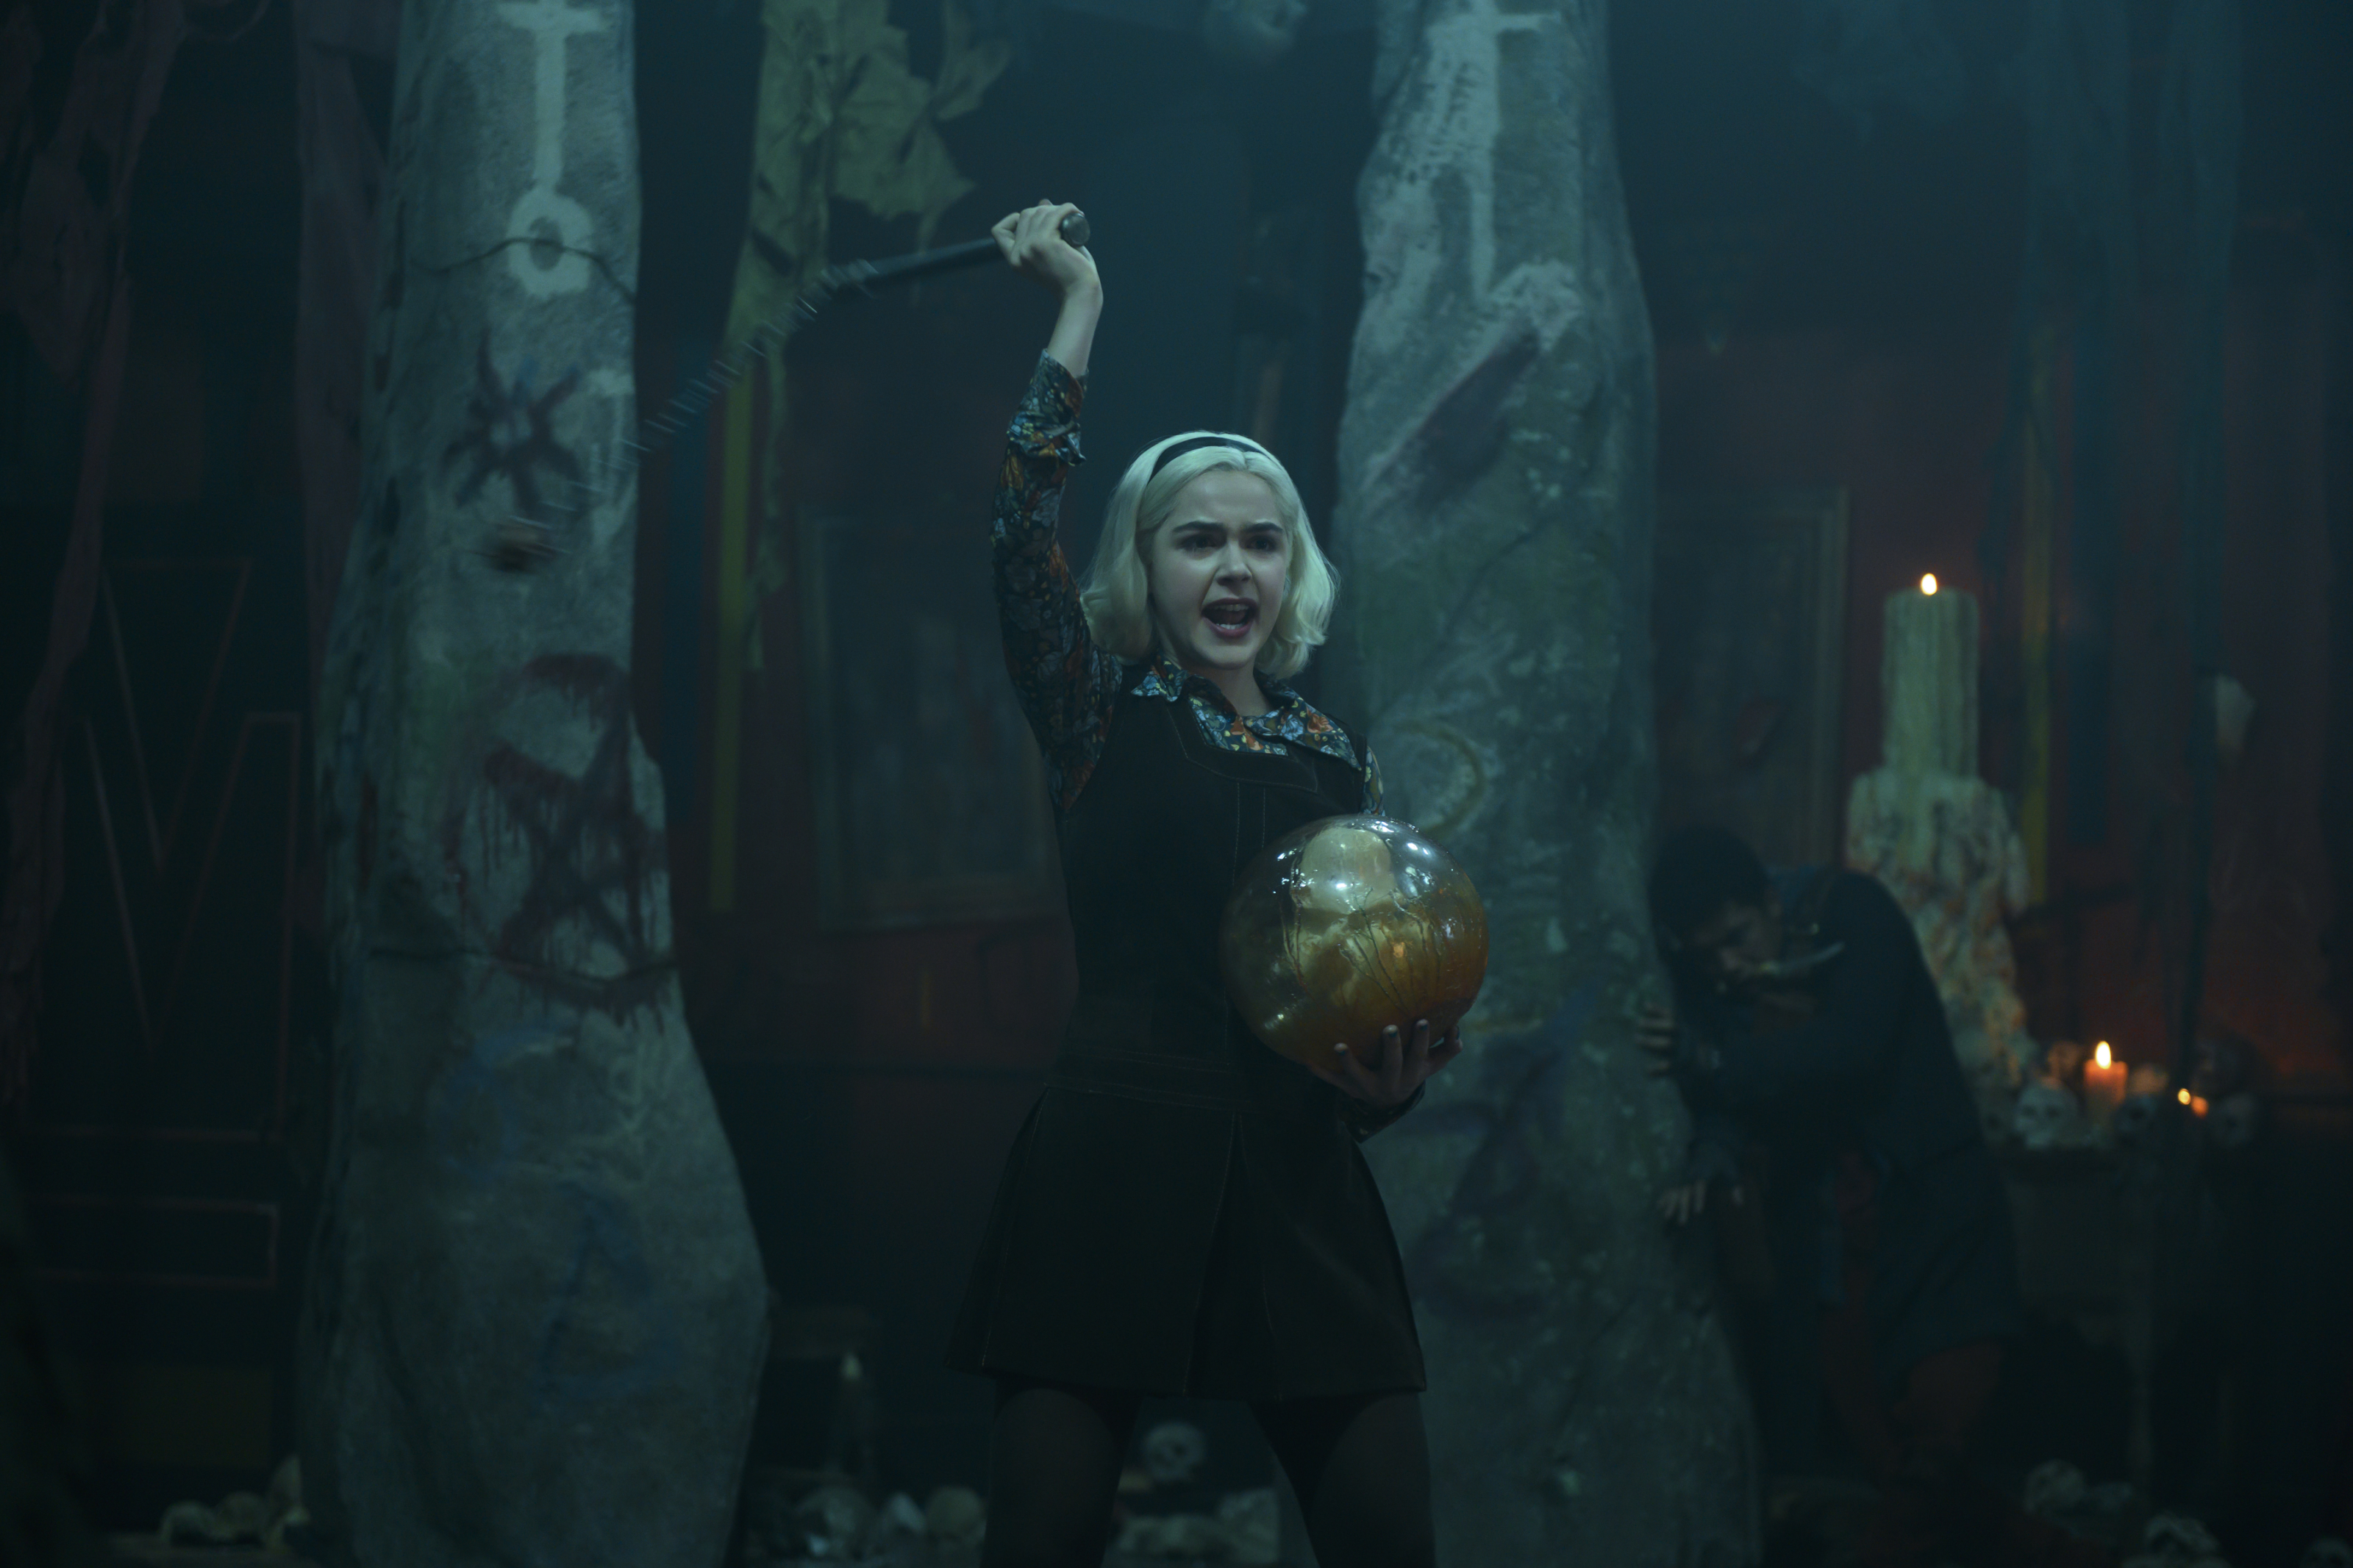 Chilling Adventures of Sabrina Part 4 release date, cast, trailer, and more